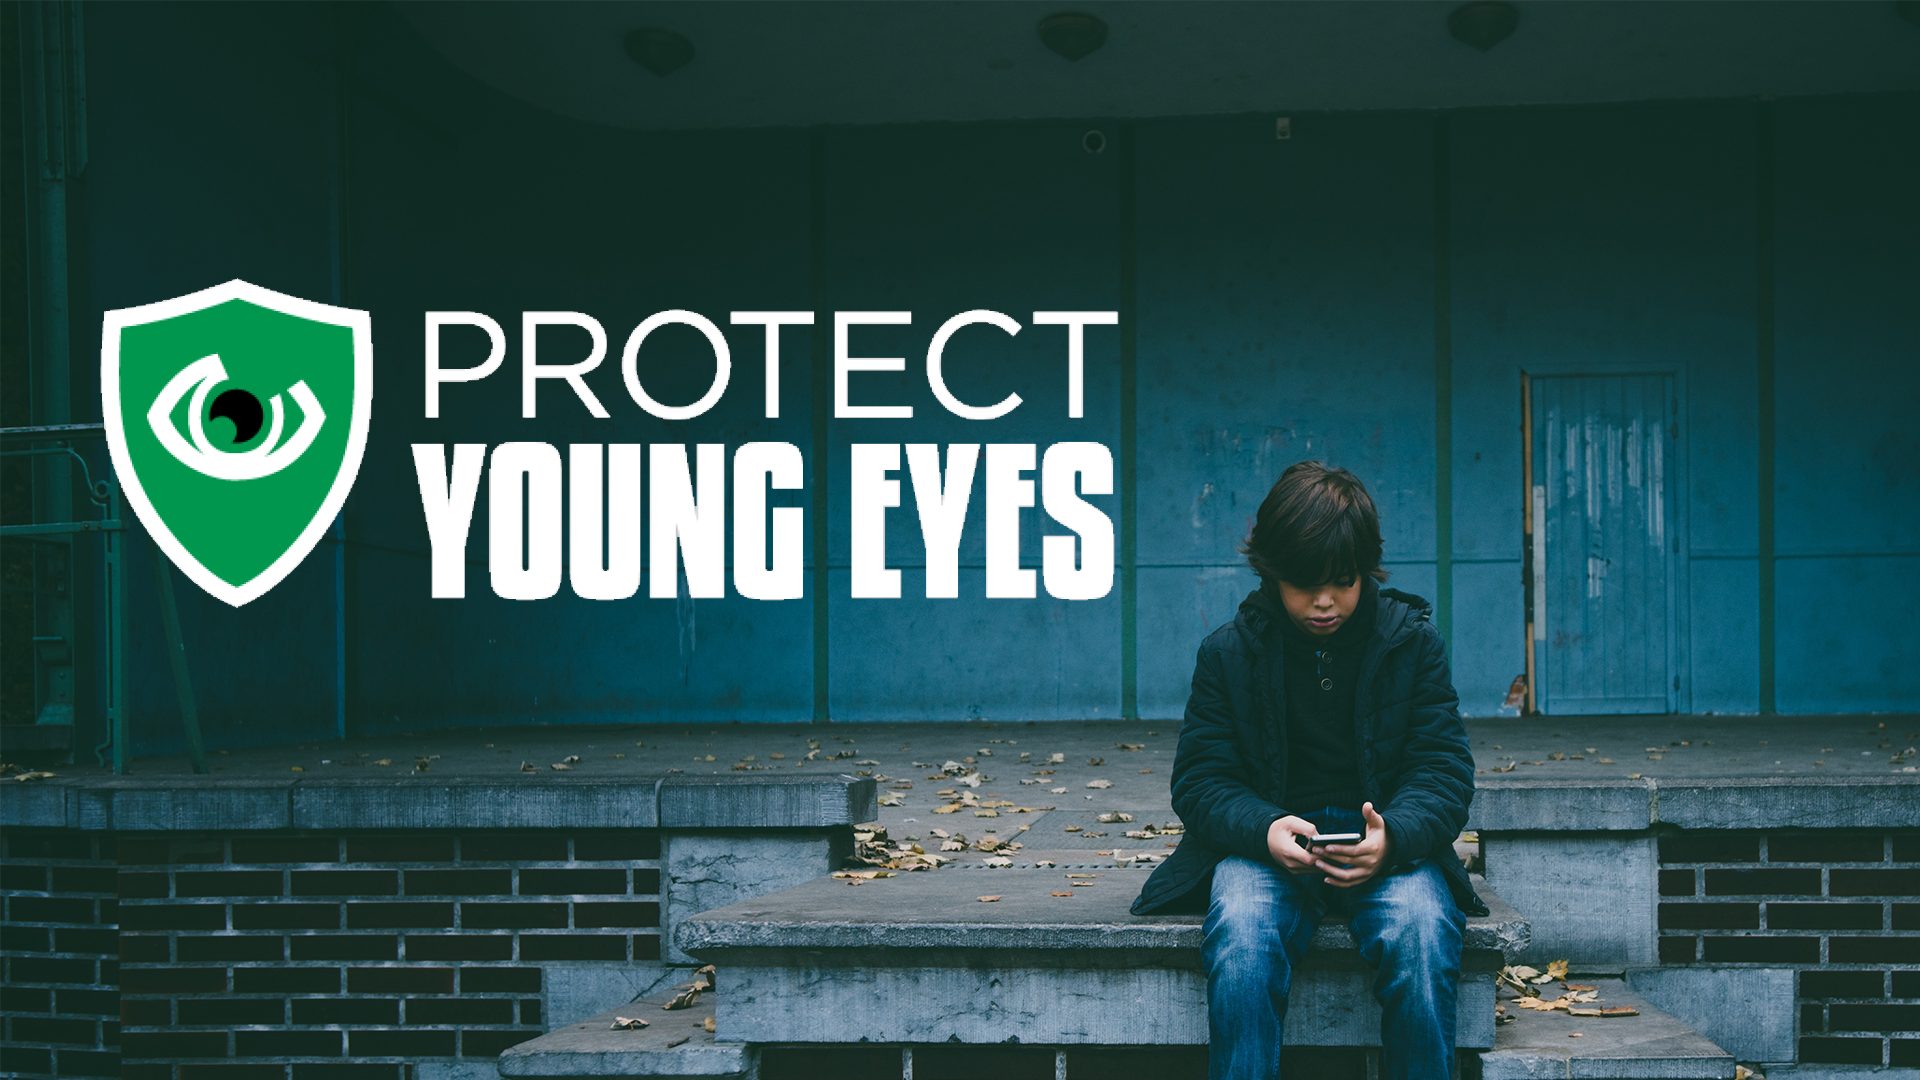 Protect young eyes 2